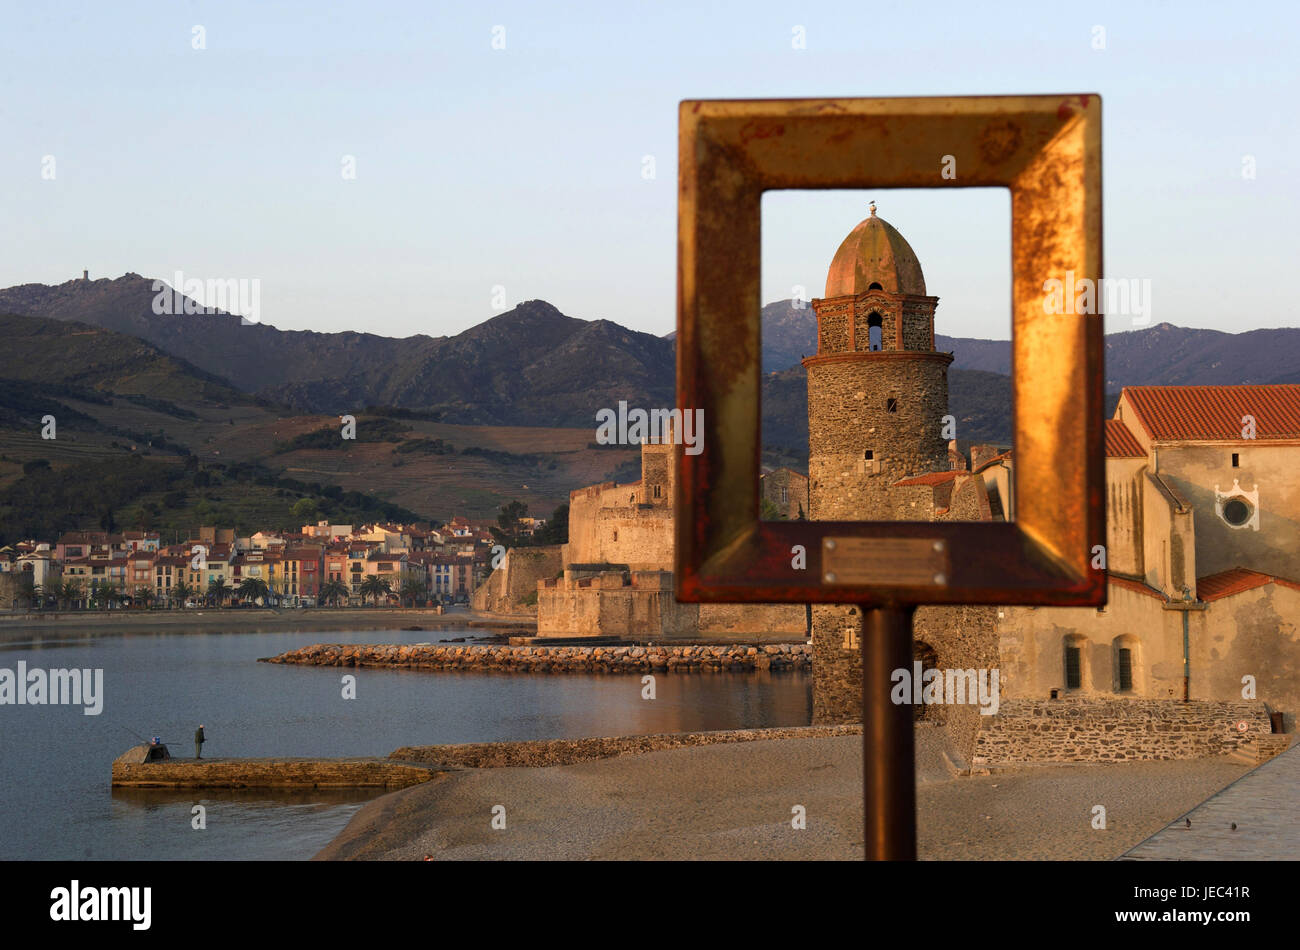 Europe, France, Collioure, château royal and Notre-Dames-des-Anges, Europe, France, Languedoc-Roussillon, Collioure, - Stock Image